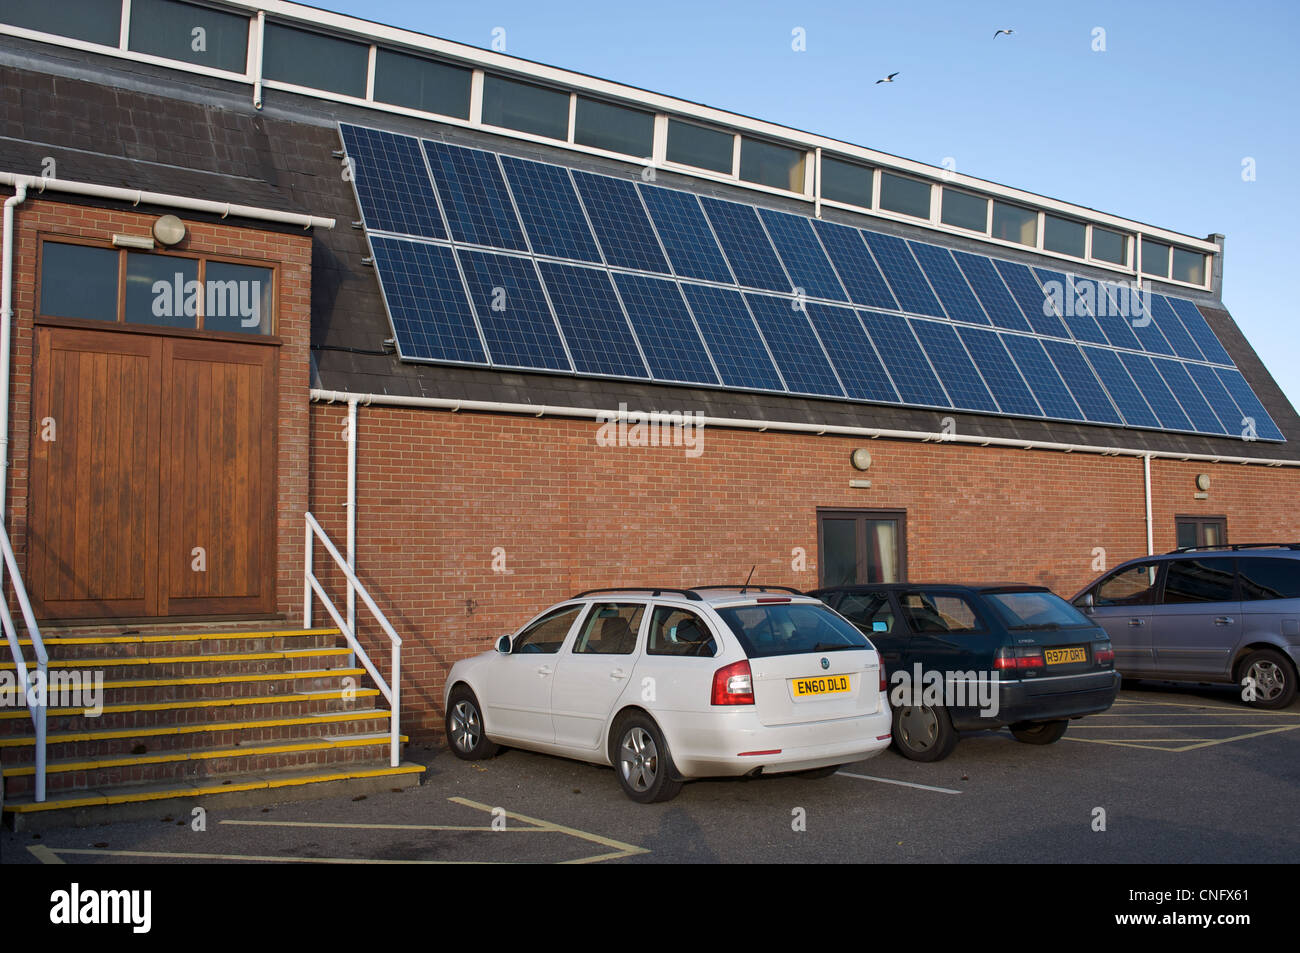 Solar panels fitted to the roof of a public building, UK. - Stock Image